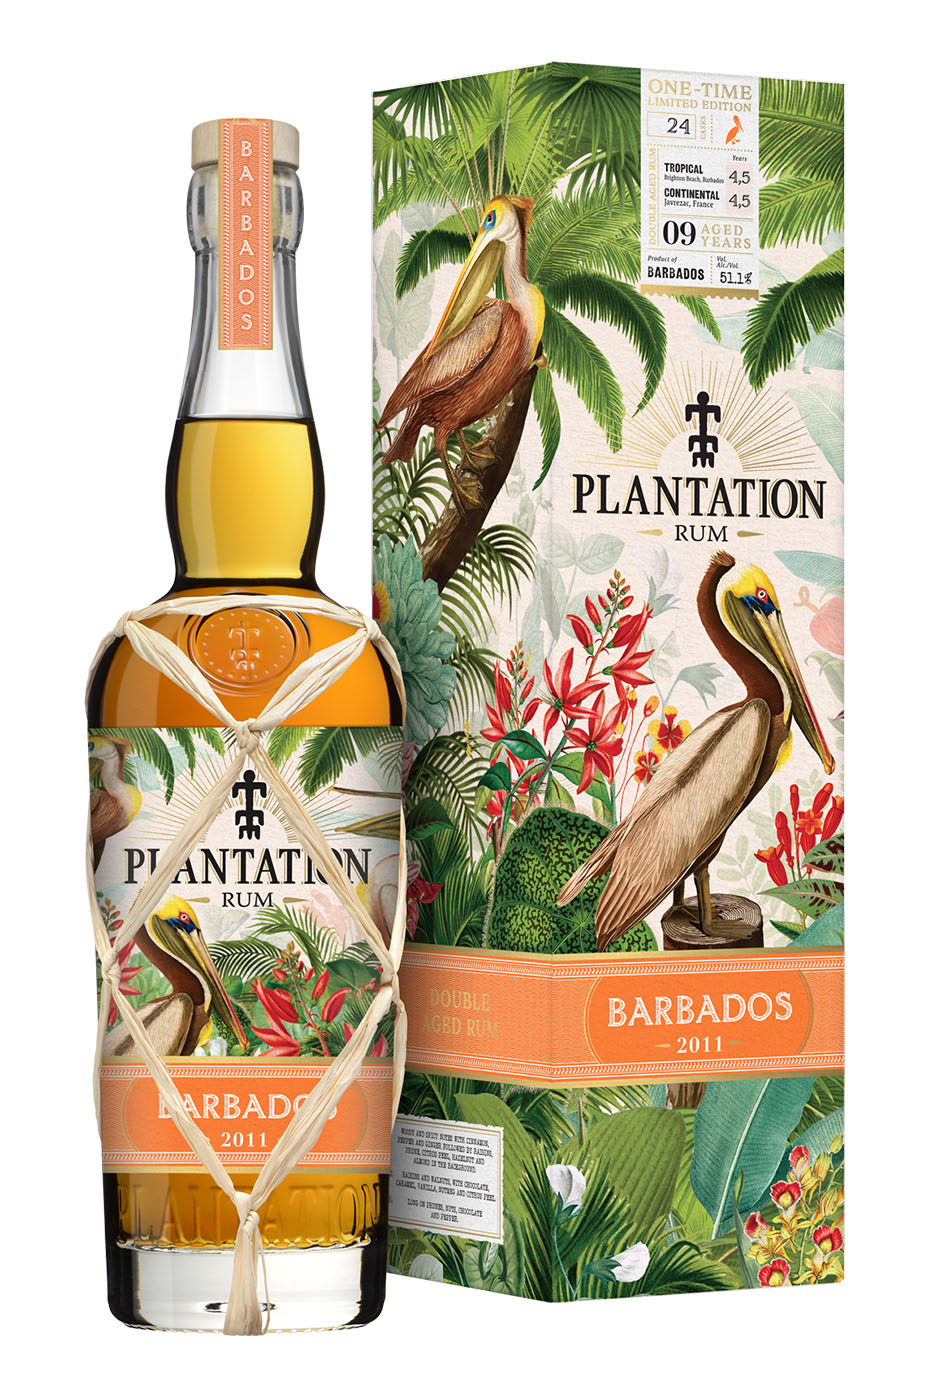 Plantation Rum Barbados 2011 ONE TIME Edition